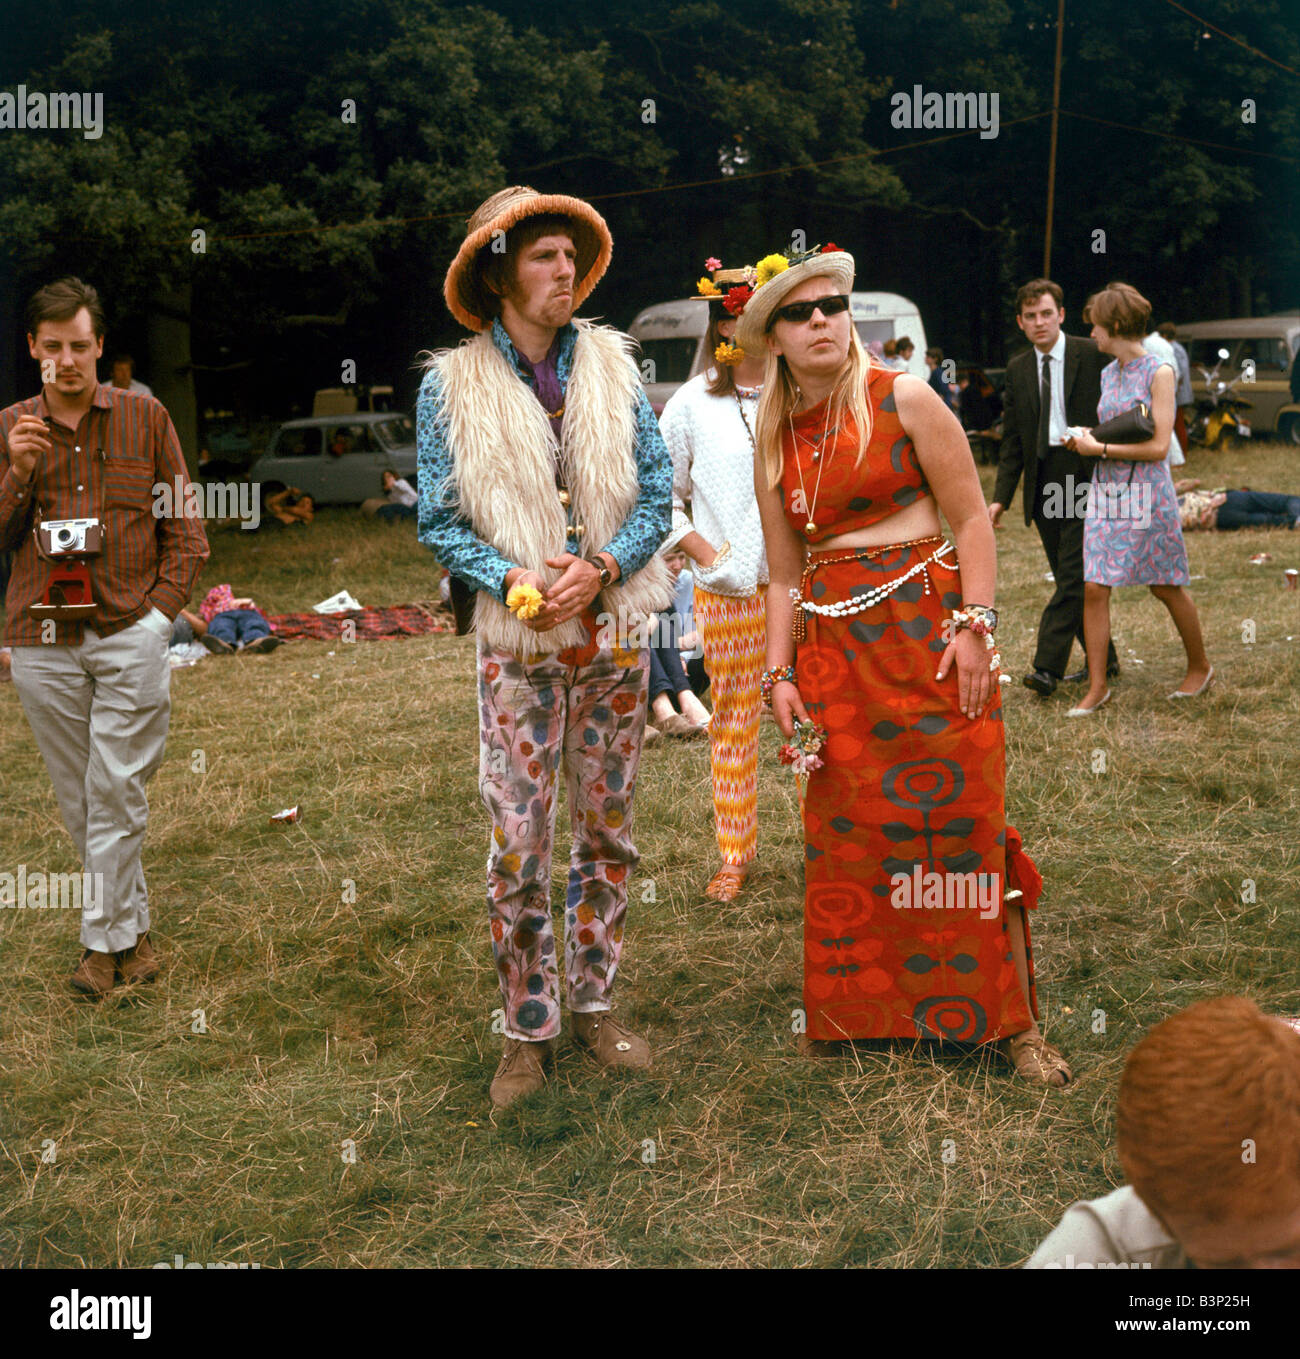 Sixties Fashion 1960s Clothing Hippies At Flower Festival Fur Waistcoat Hat Sunglasses Floral Trousers And Dress Mirrorpix